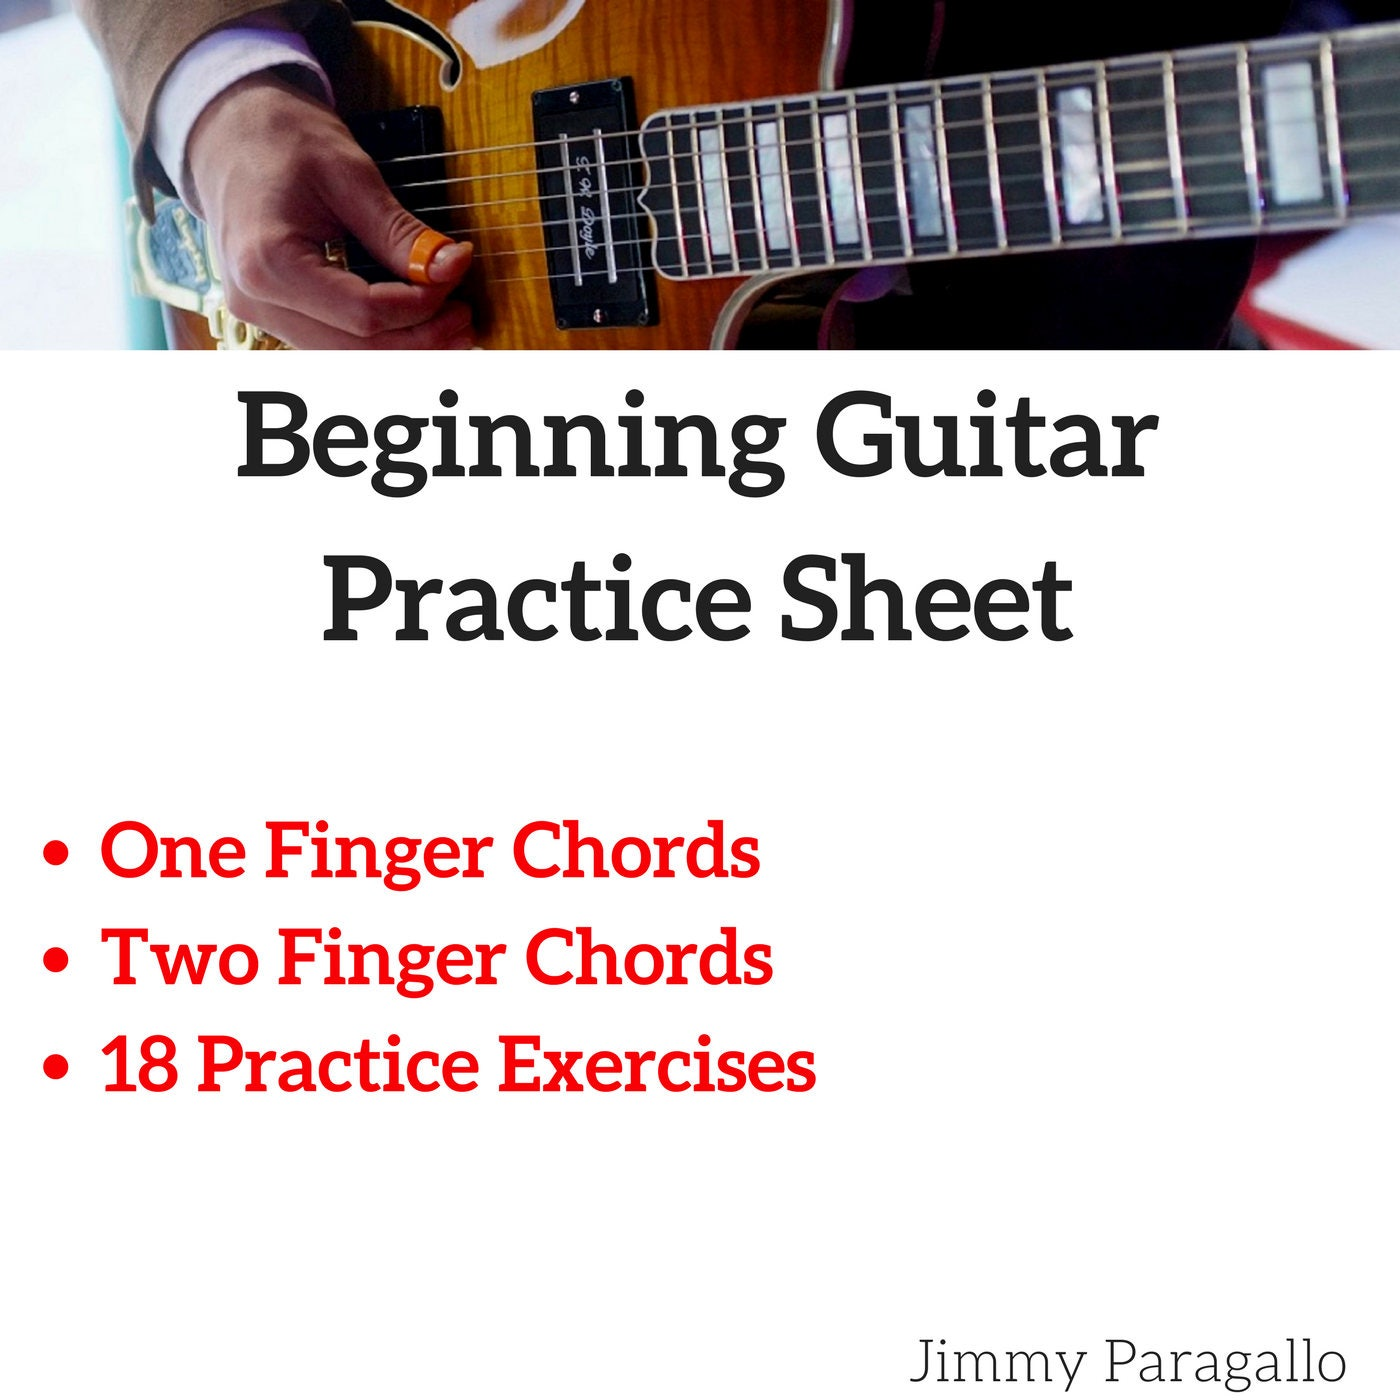 Beginning Guitar First Chords Practice Exercises Etsy